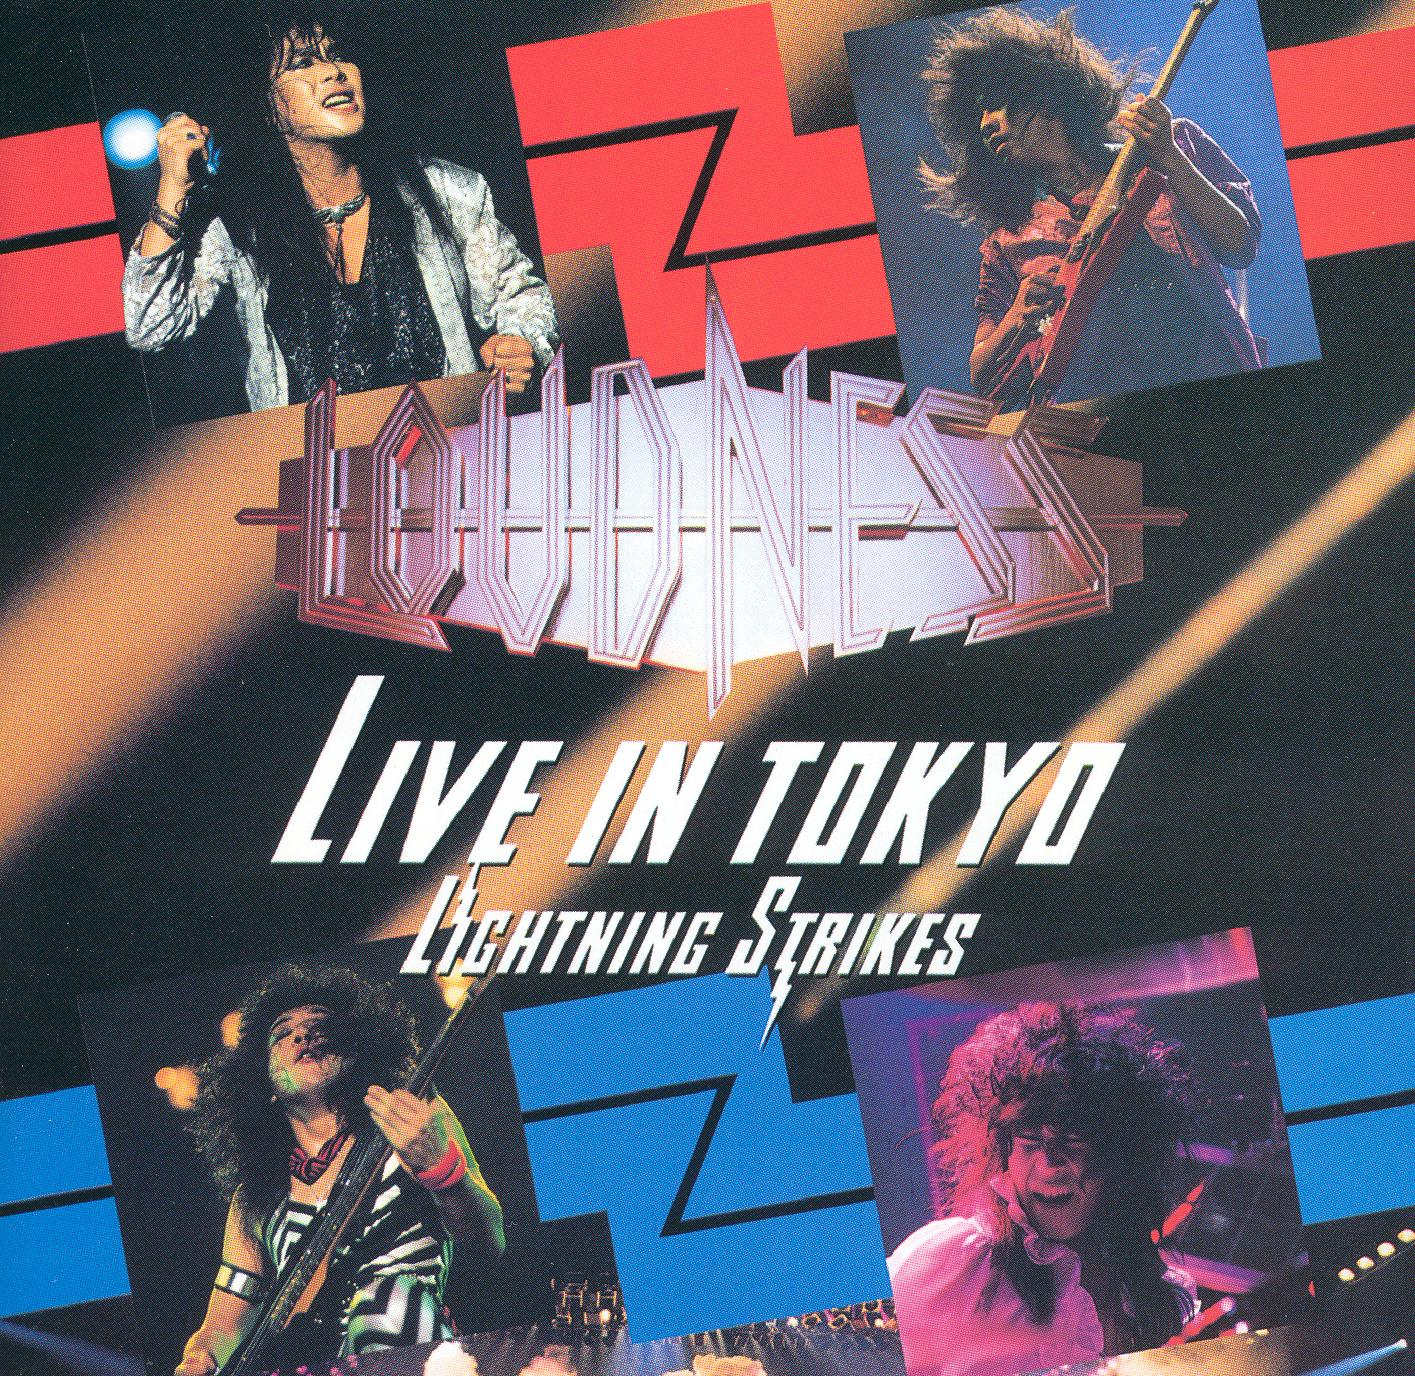 Loudness: Live in Tokyo - Lightning Strikes